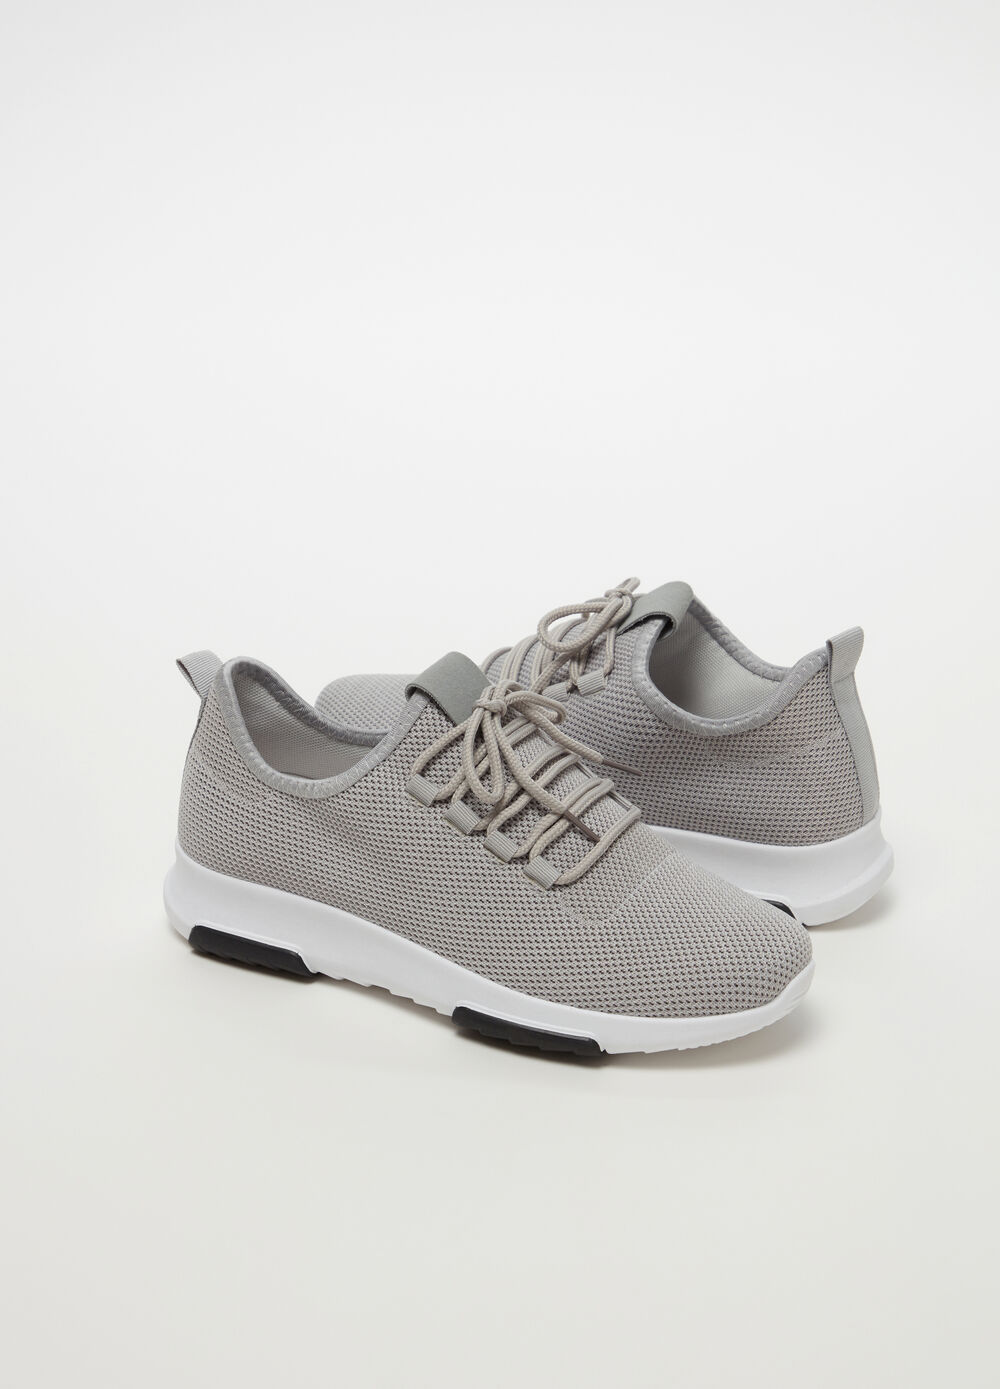 Sneakers with mesh upper and thick sole